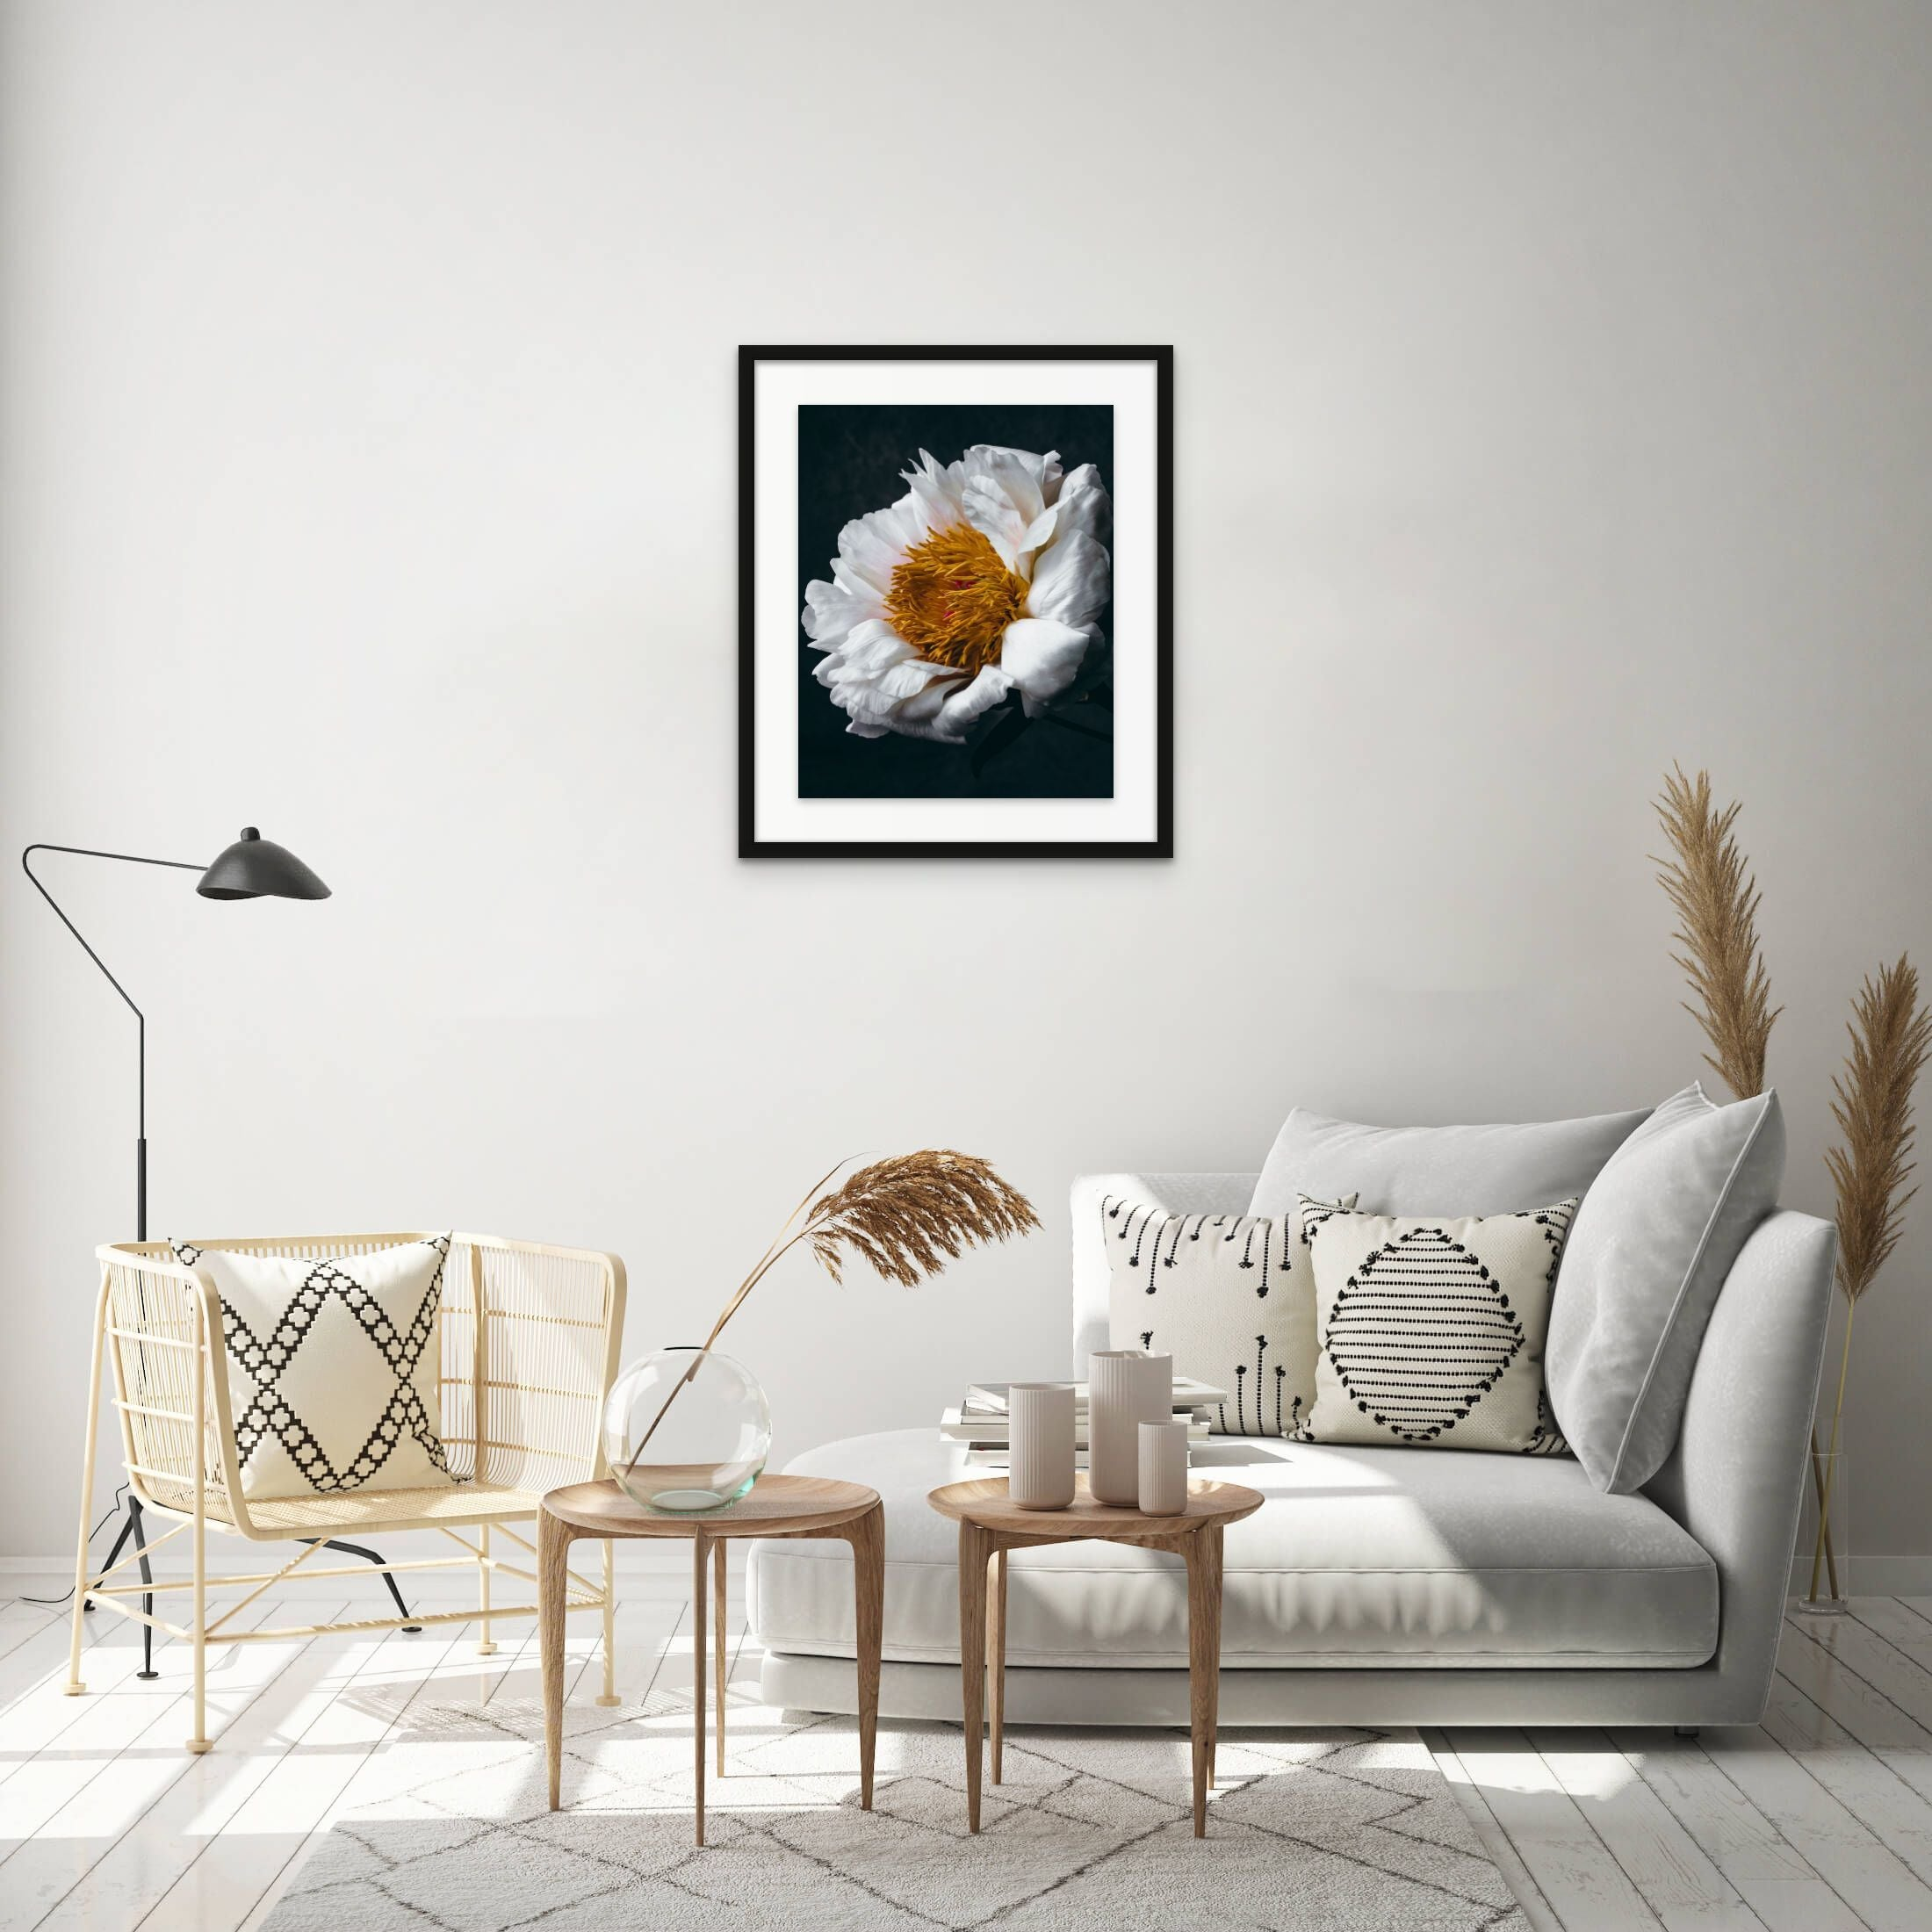 framed white and yellow flower art photo on wall above sofa and chair